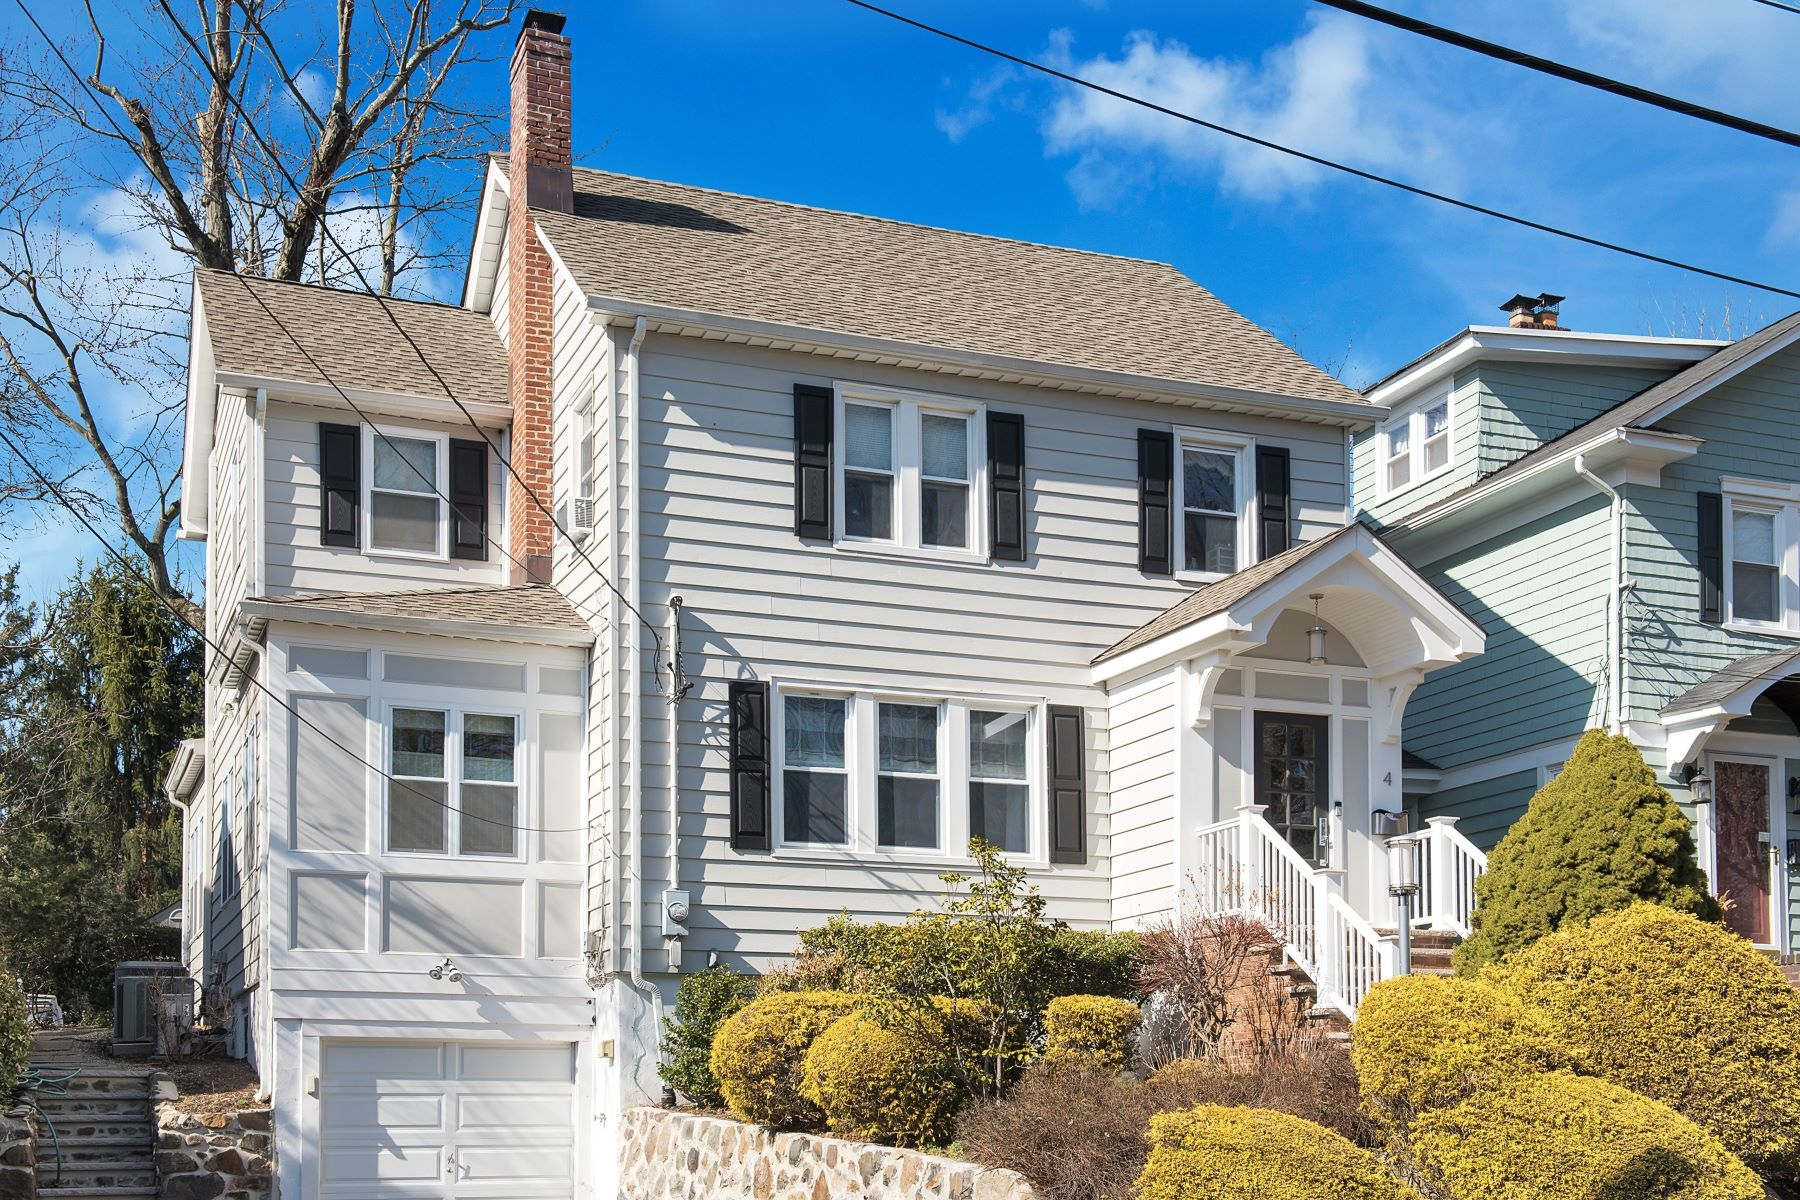 Single Family Homes for Sale at Completely Renovated Colonial 4 Lavina Court New Providence, New Jersey 07901 United States